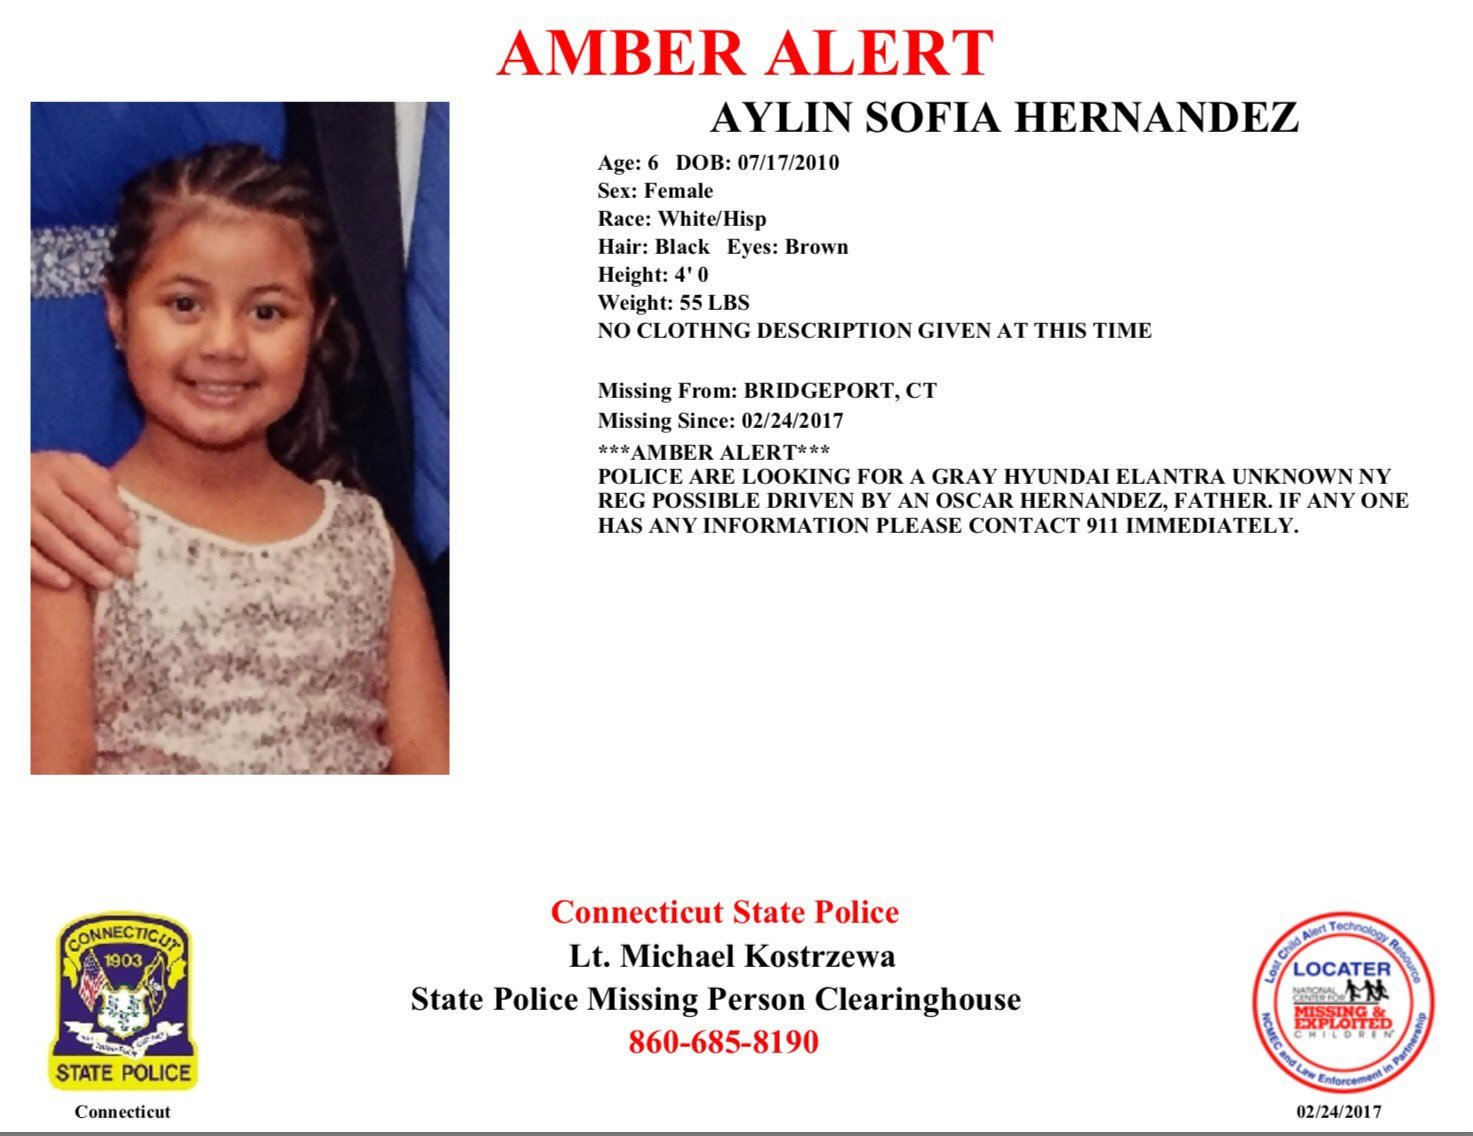 Amber Alert issued for Bridgeport child following homicide